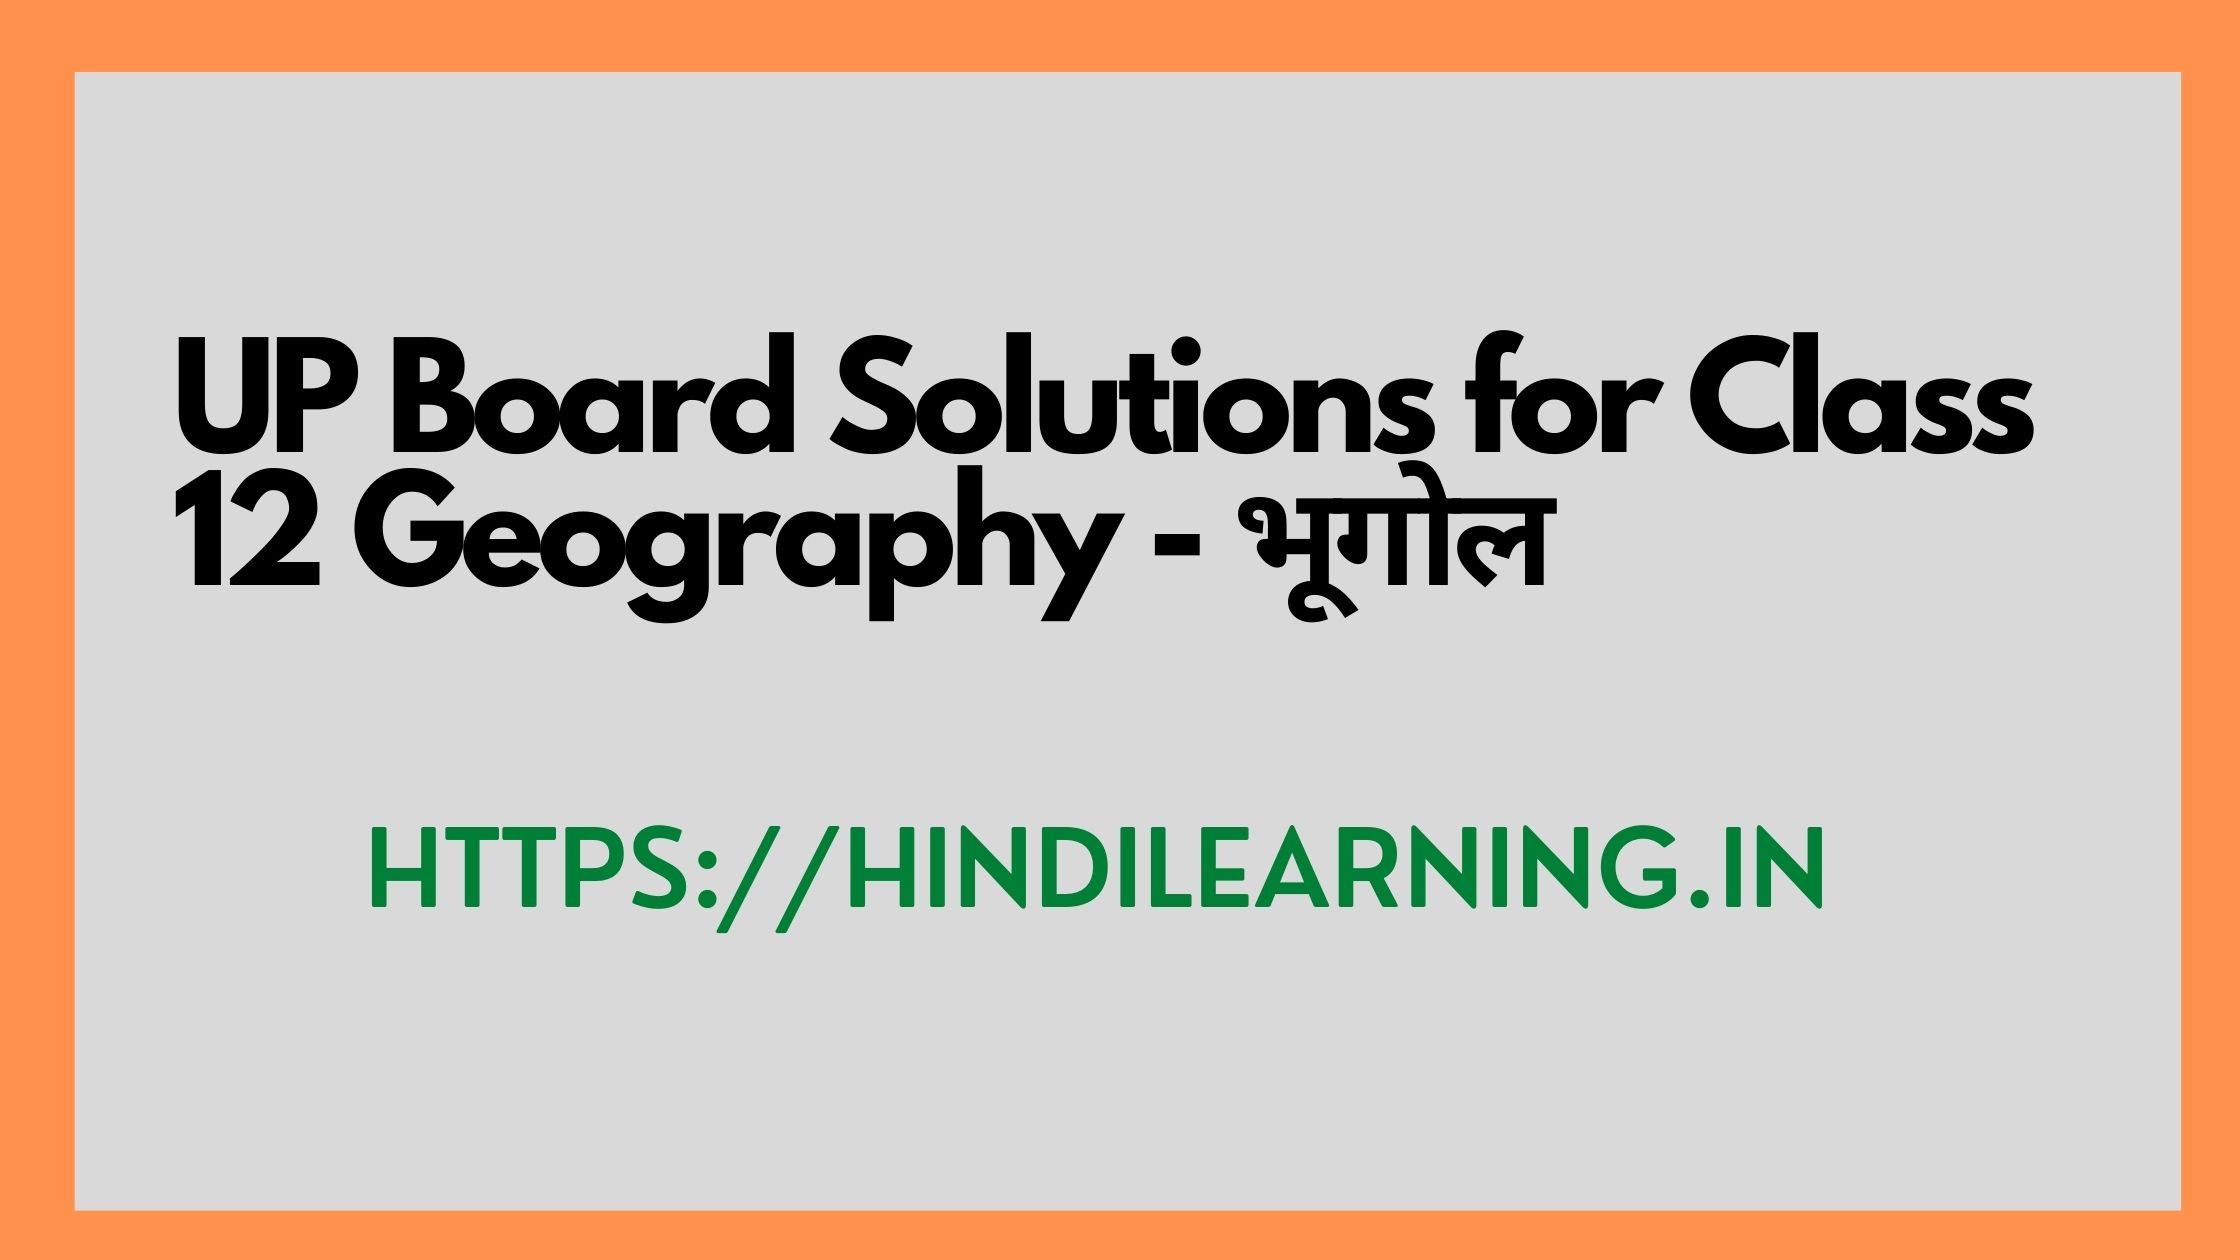 UP Board Solutions for Class 12 Geography भूगोल